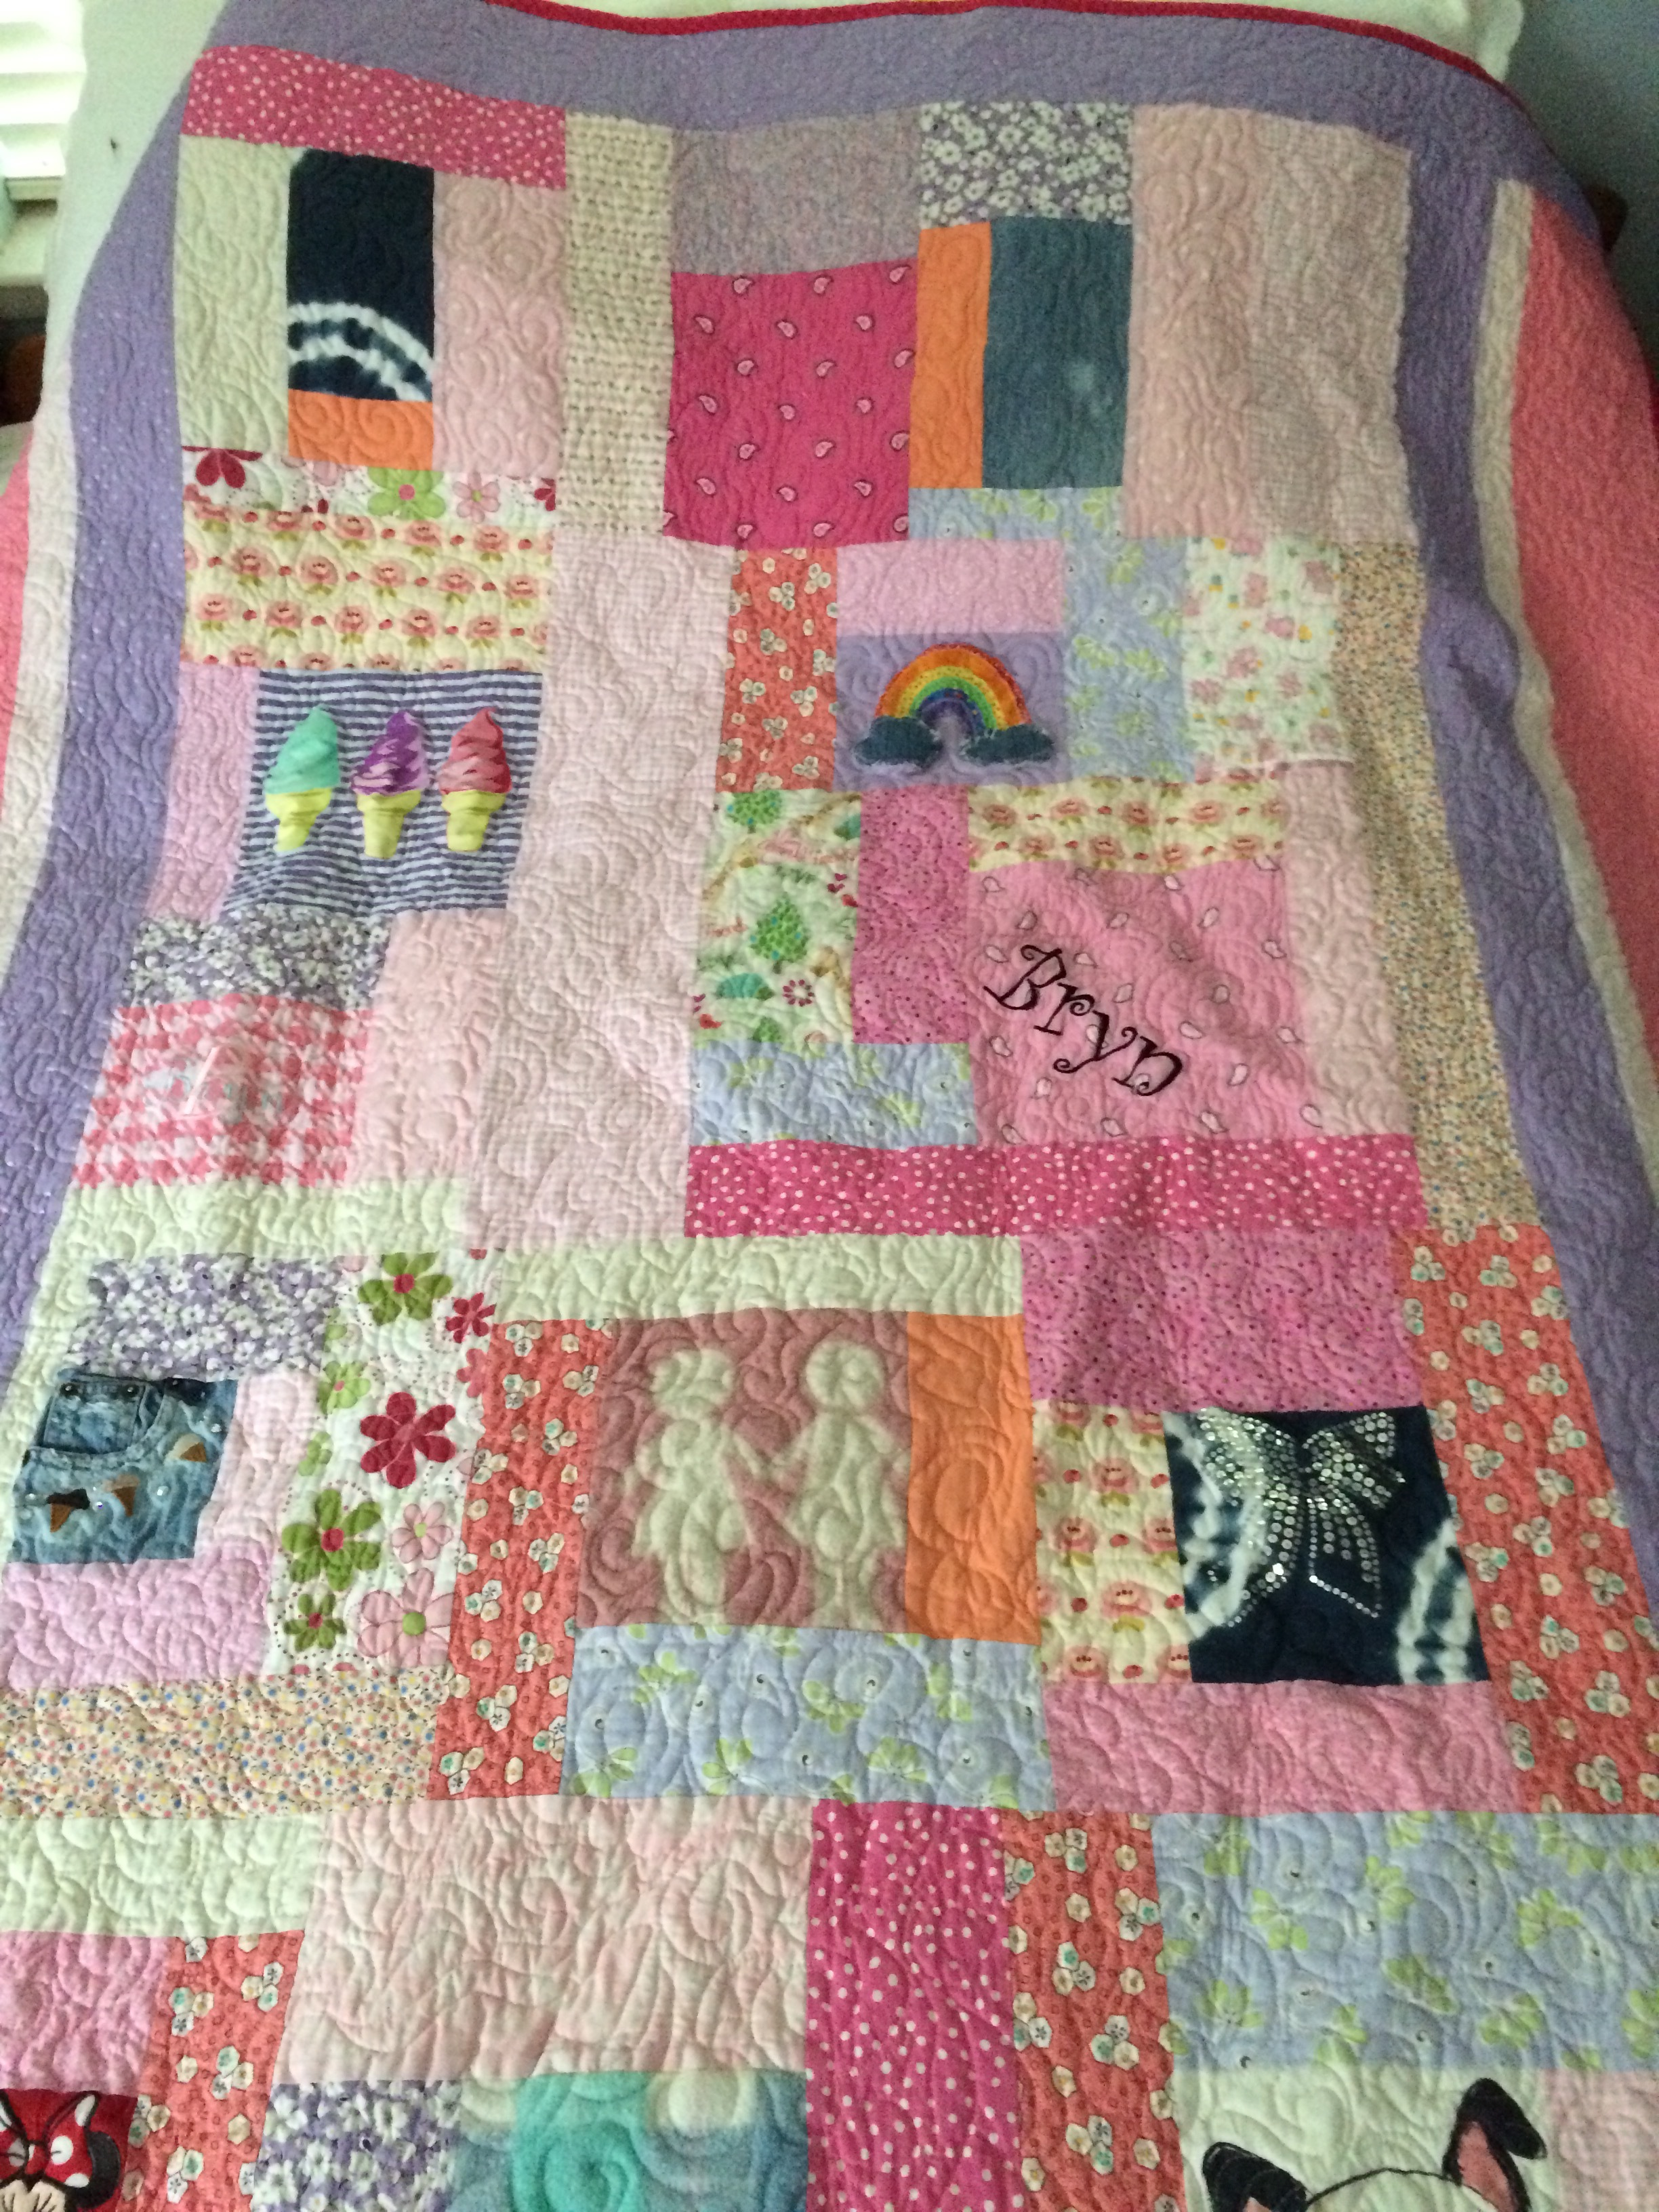 Custom quilt made for a reality TV star Bethenny Frankel's daughter Bryn.